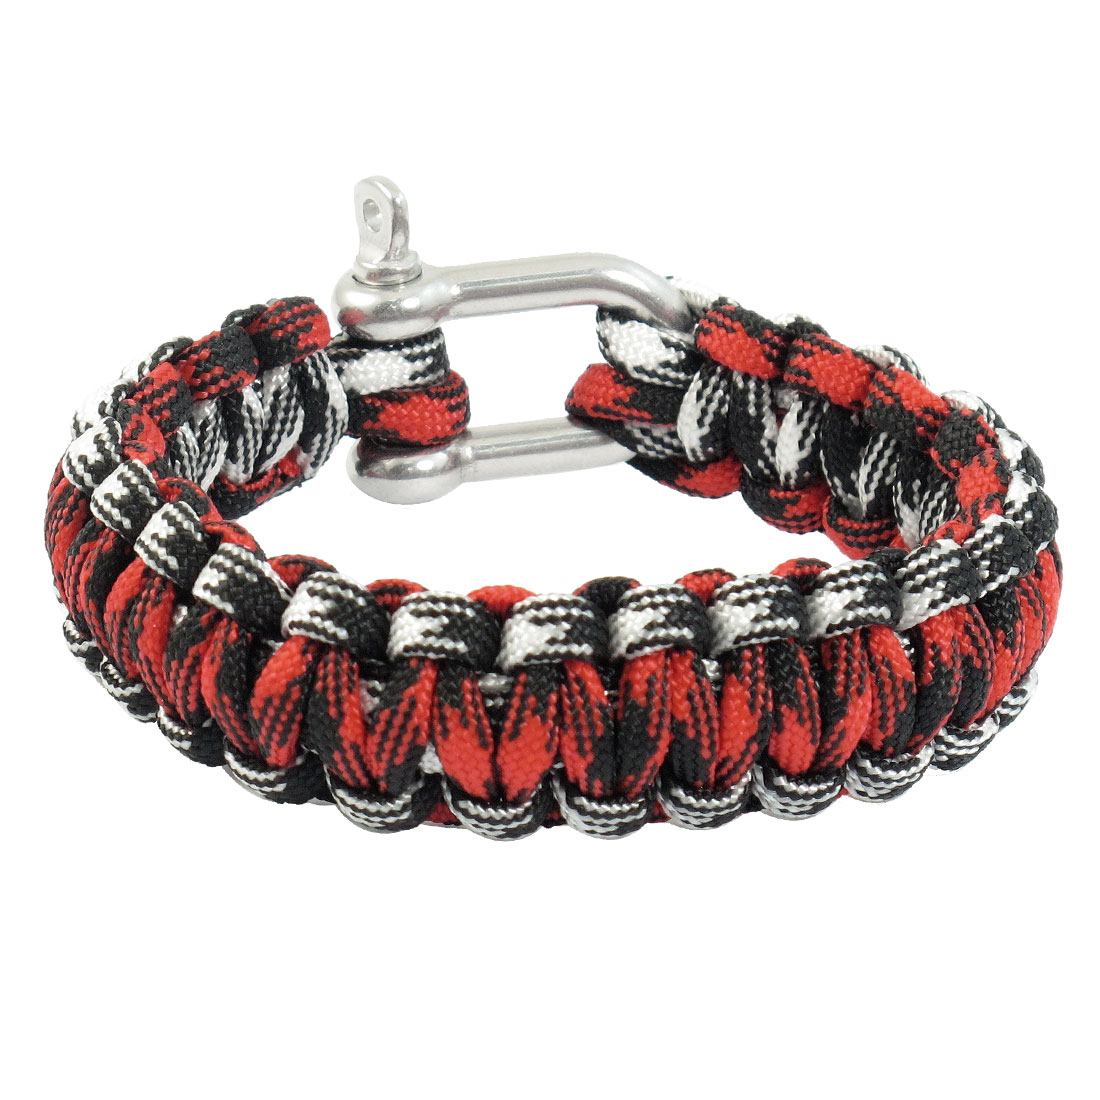 Outdoor Sports Stainless Steel Shackle Multi Color Survival Bracelet